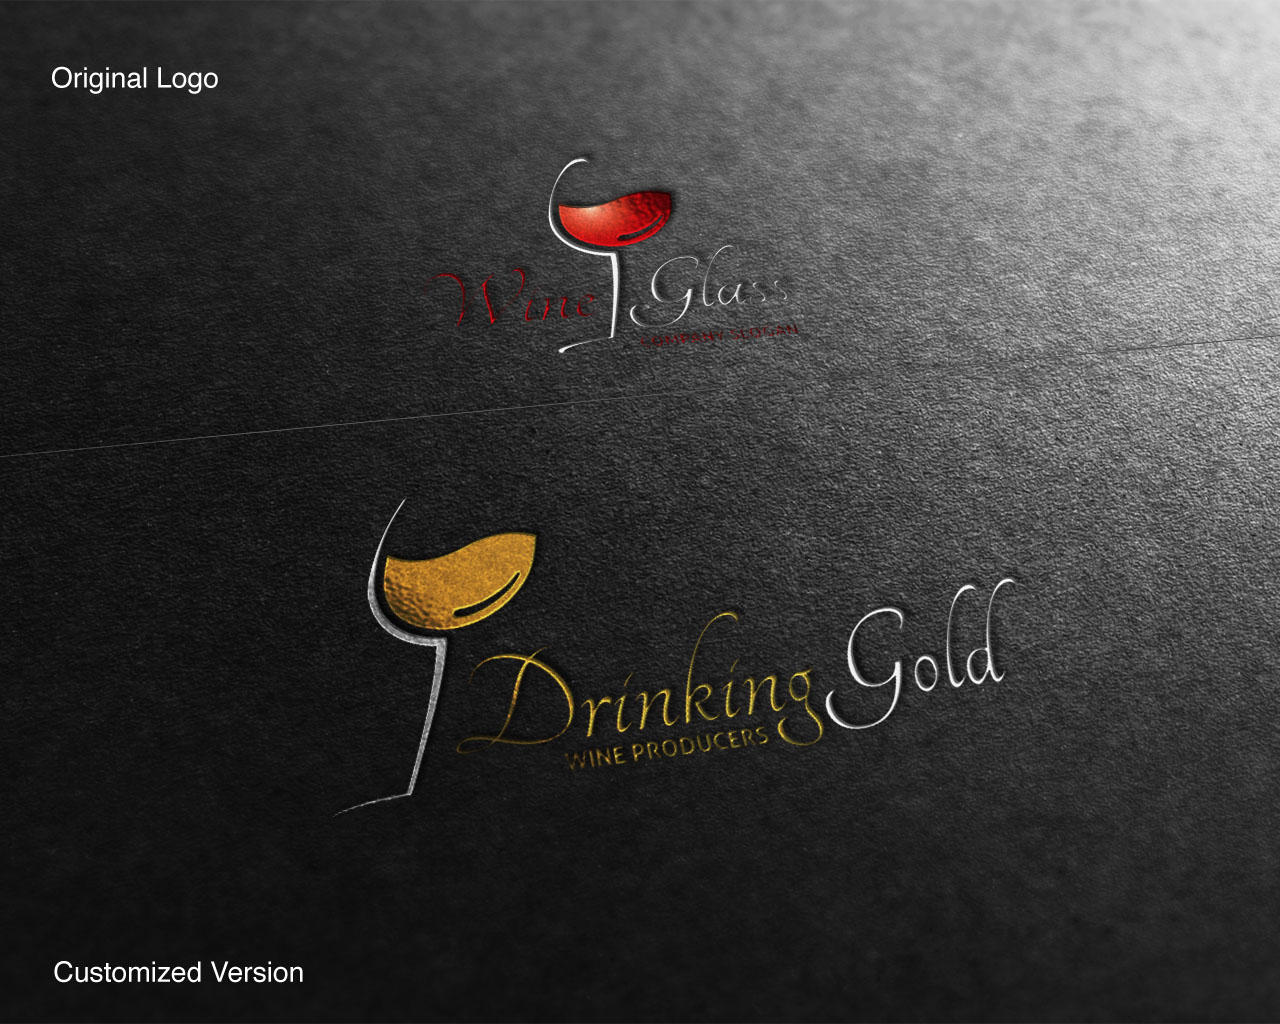 Simple Logo Tweak & Customization by PVillage - 62539